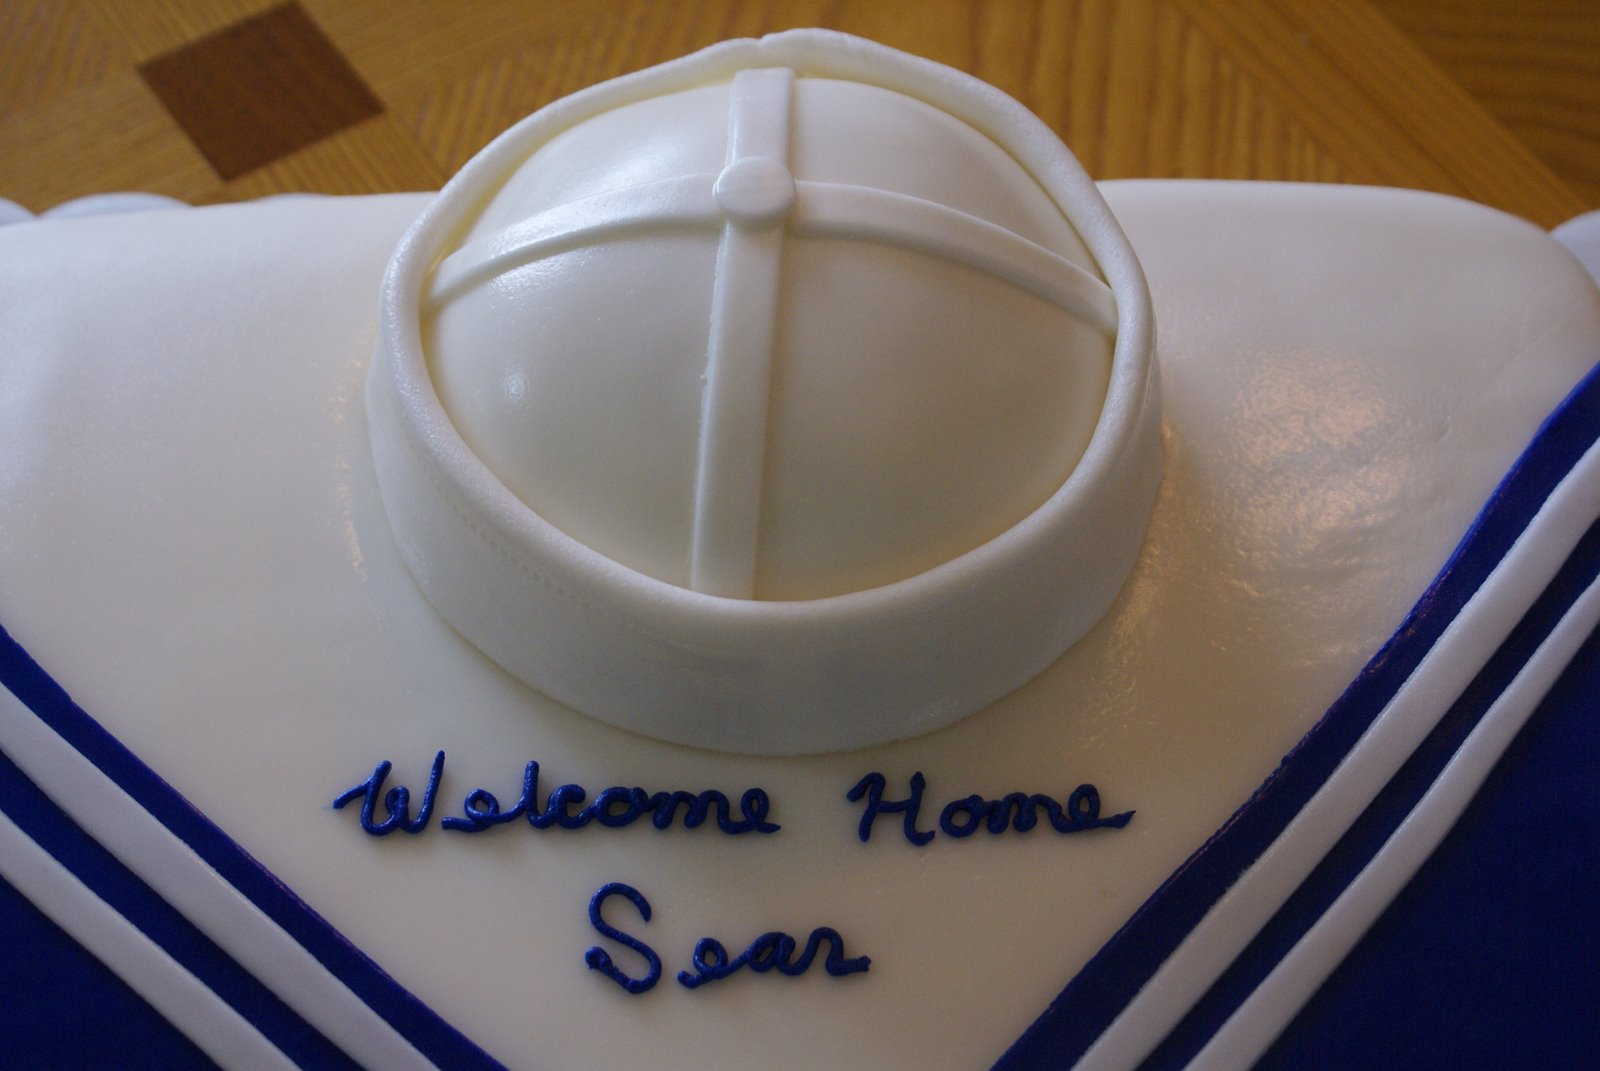 Welcome home navy cakes images - photo album stores melbourne